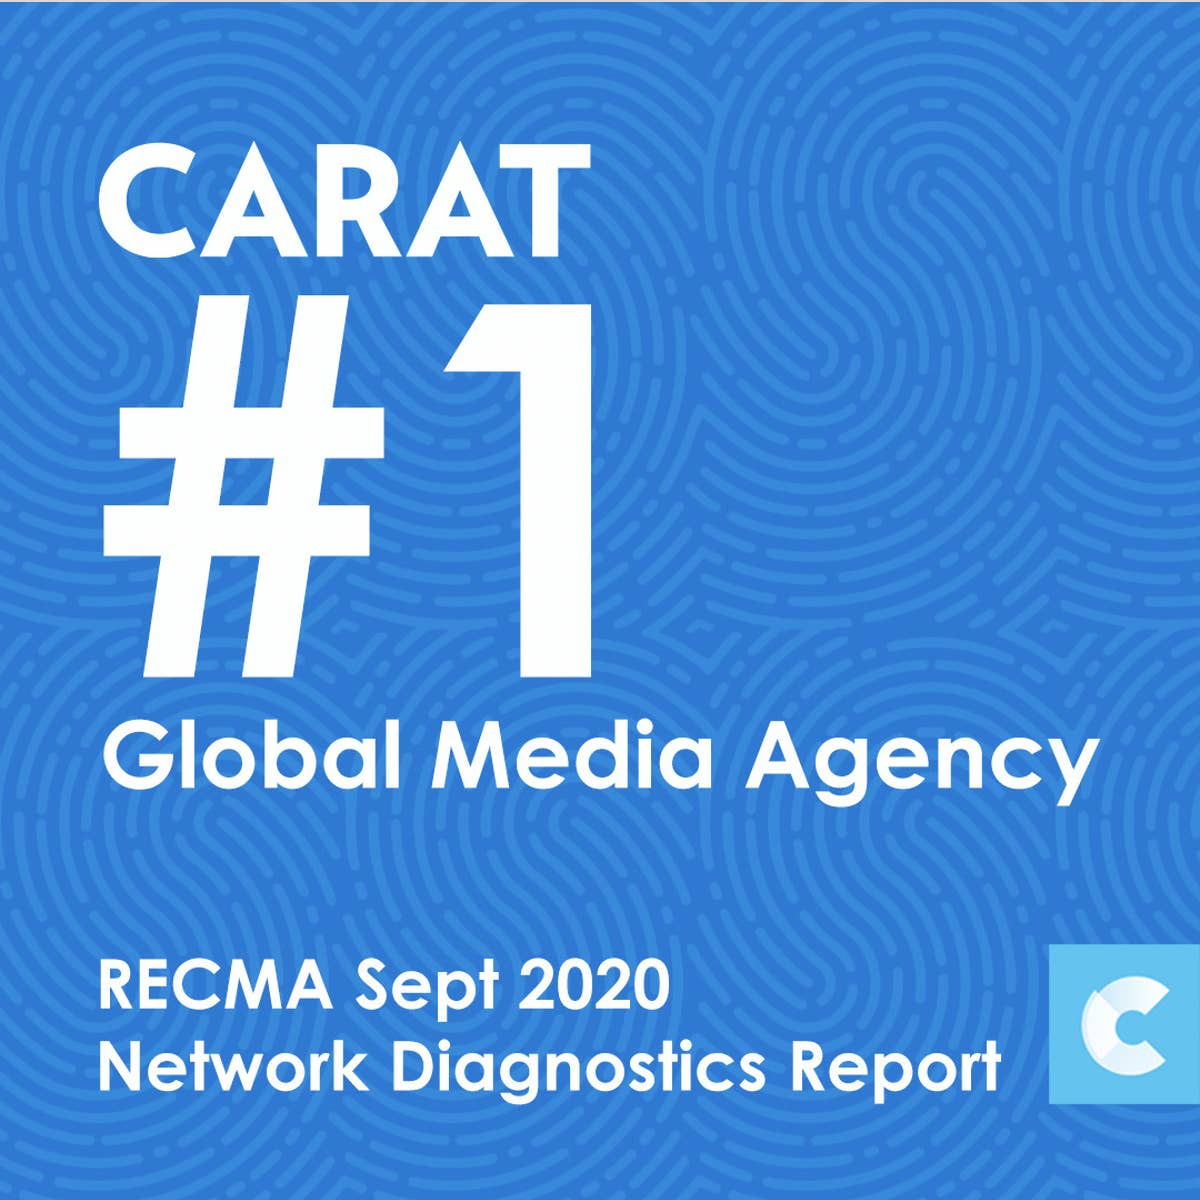 Carat ranked #1 Globally in RECMA Qualitative Diagnostics Report